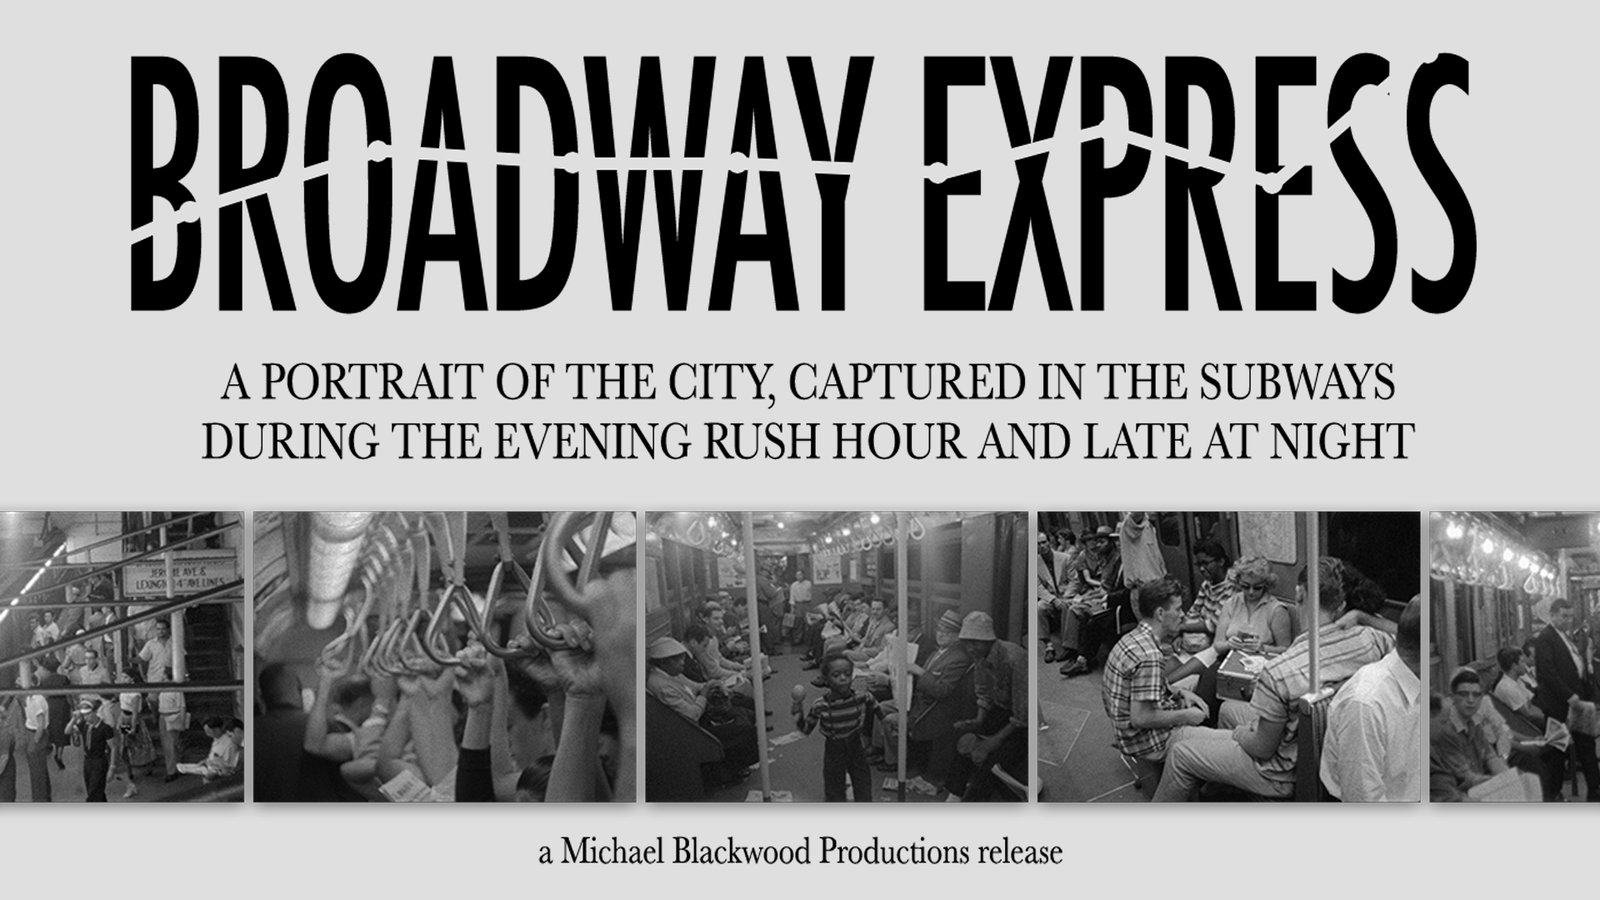 Broadway Express - A Historic Portrait of New York City